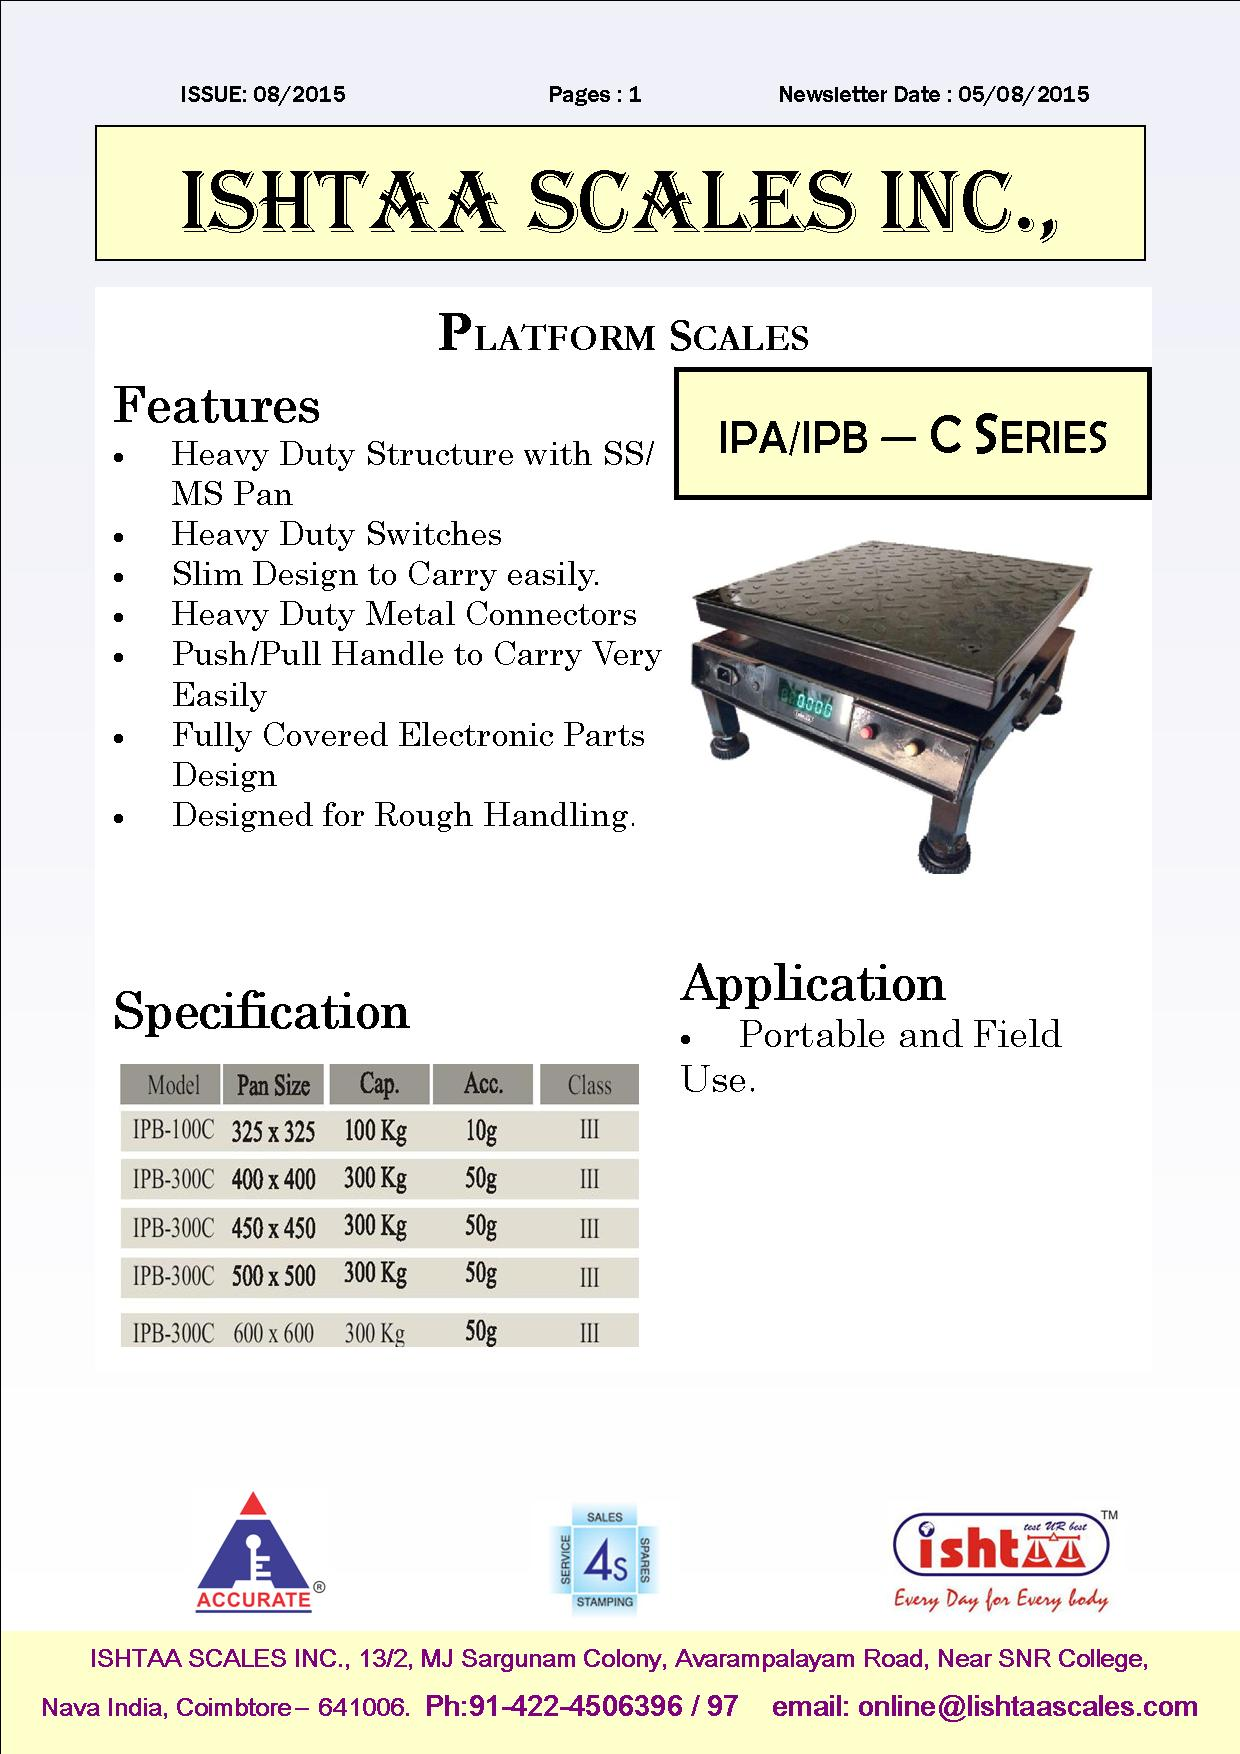 Best Commercial Weighing Scales  Ishtaa Chicken Scales Dairy Weighing Scales Farm Weighing Scales Poultry Weighing Scales Godown Weighing Scales Industry Weighing Scales Warehouse Weighing Scale Agri Weighing Scale  Accurate Electronics Coimbatore